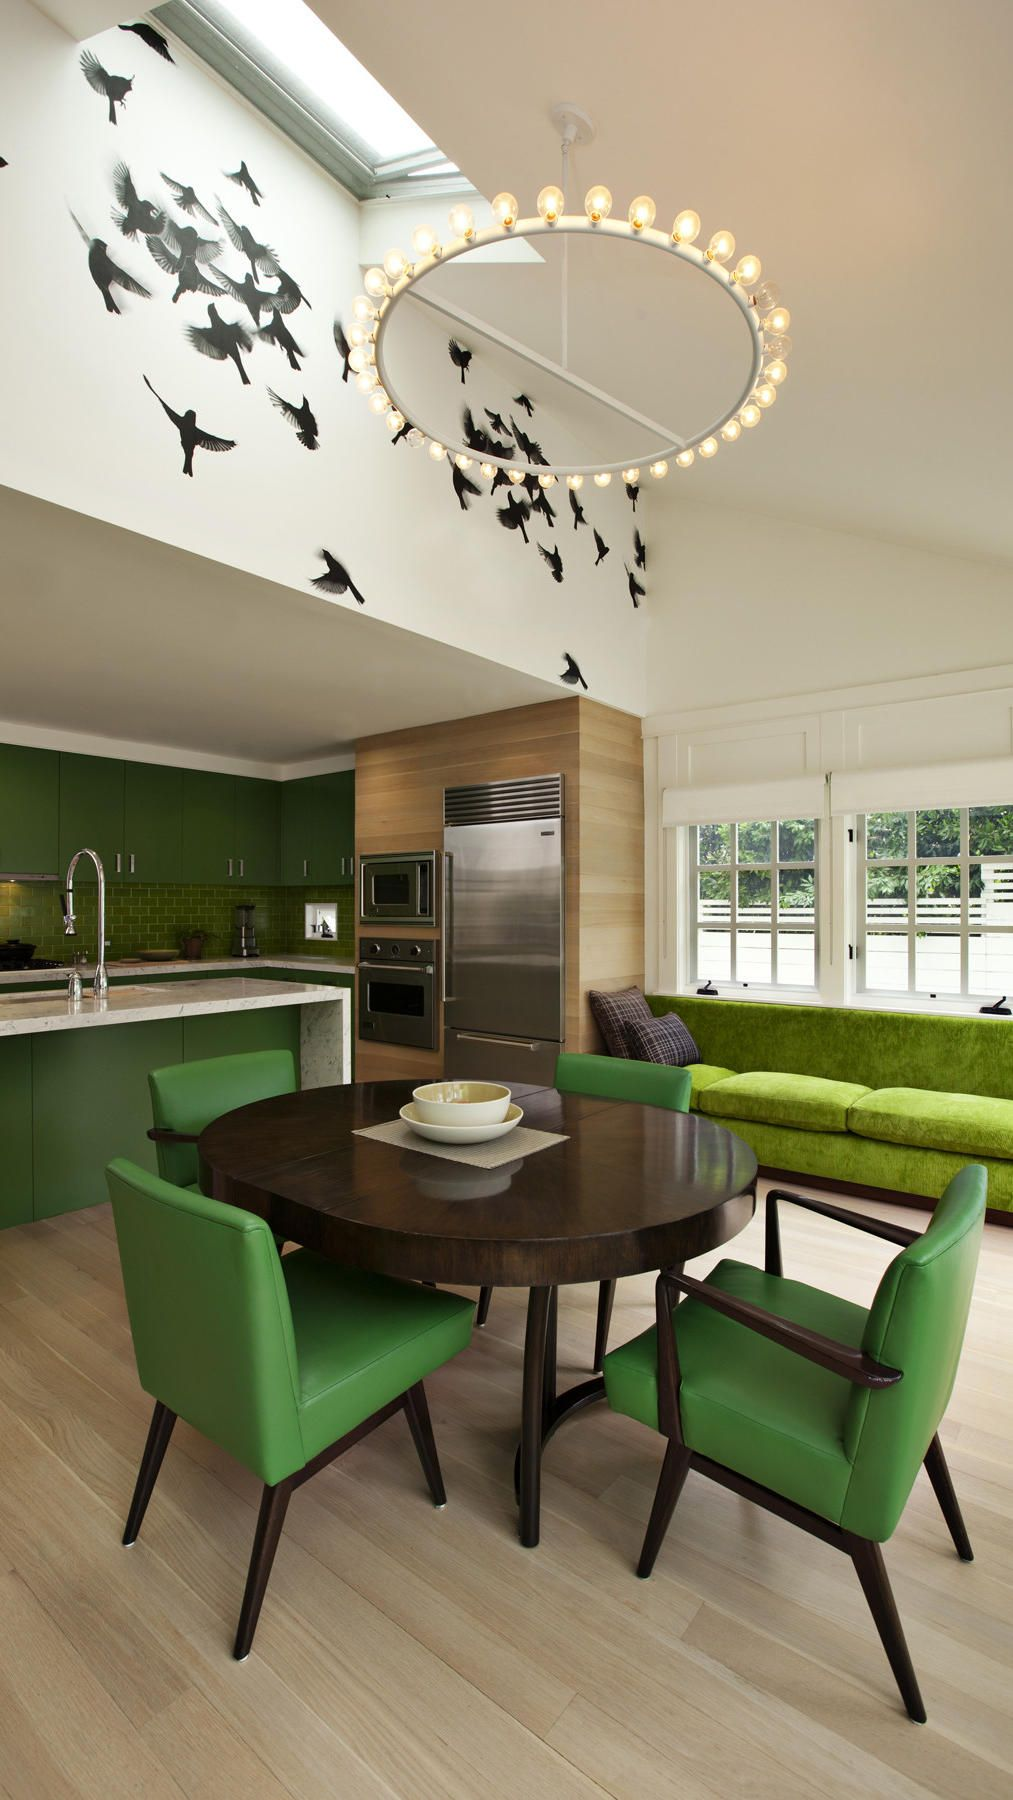 Fabulous green kitchen!  Hollywood bungalow remodel by designer Kay Kollar, Indi wallpaper by Trove.